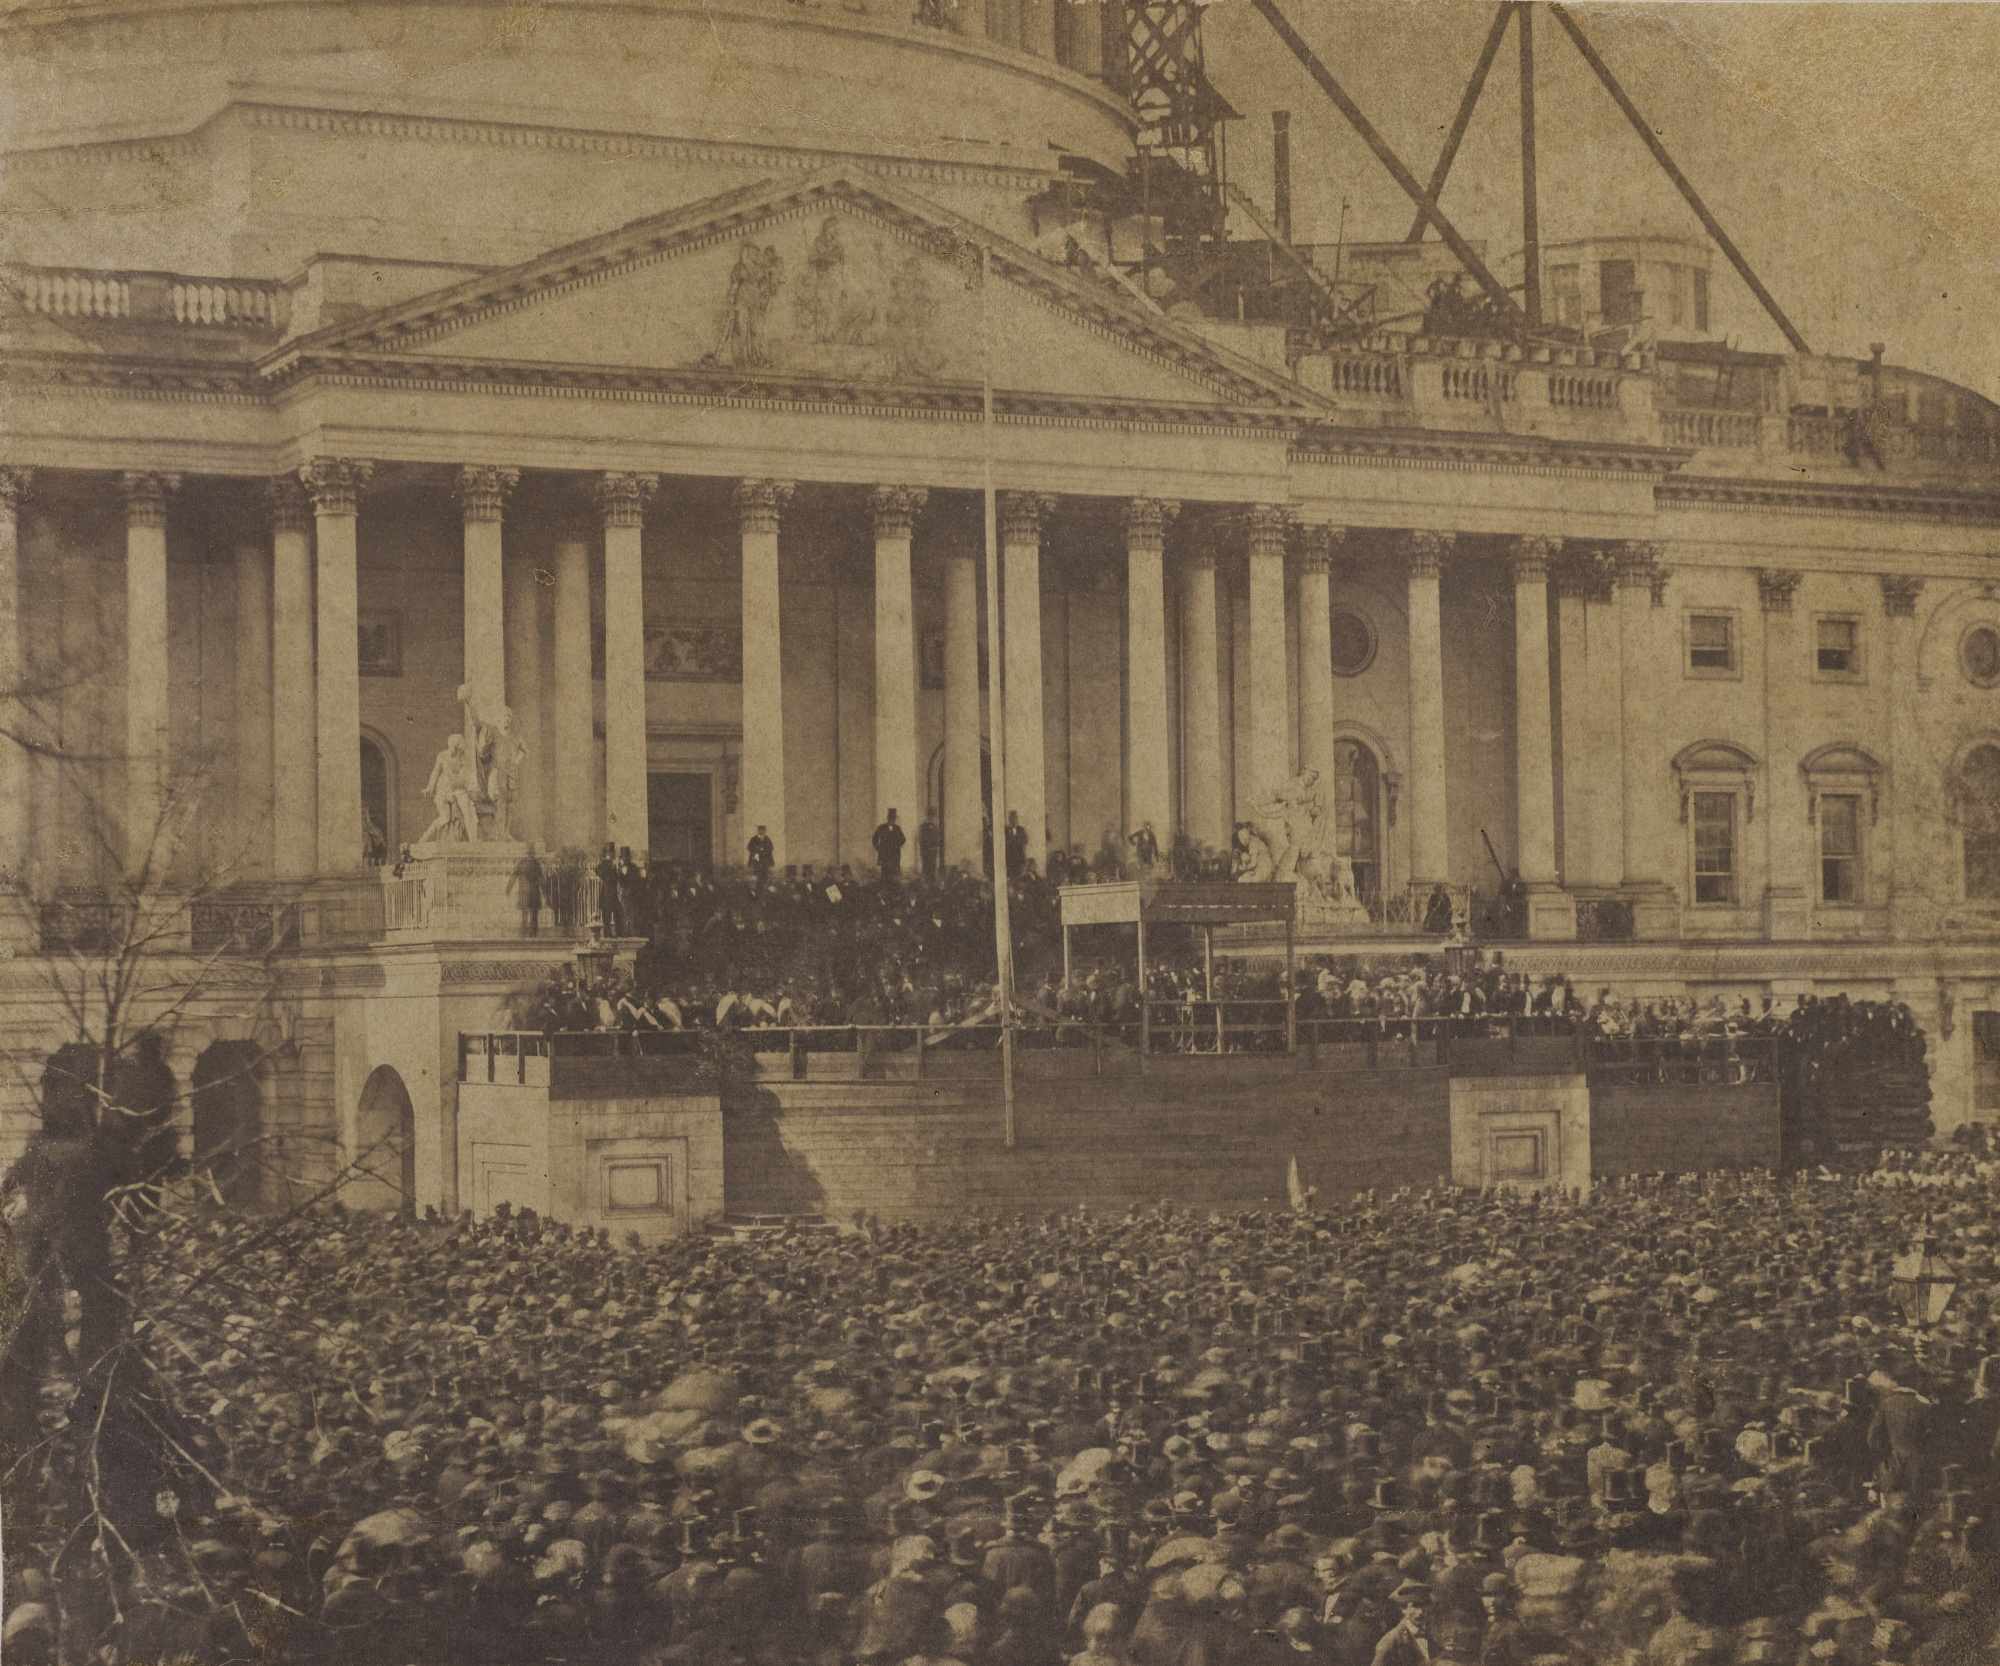 Photographer Unknown (possibly Alexander Gardner 1821-1882) - The First InauguralOf Abraham Lincoln 4 March 1861-1861